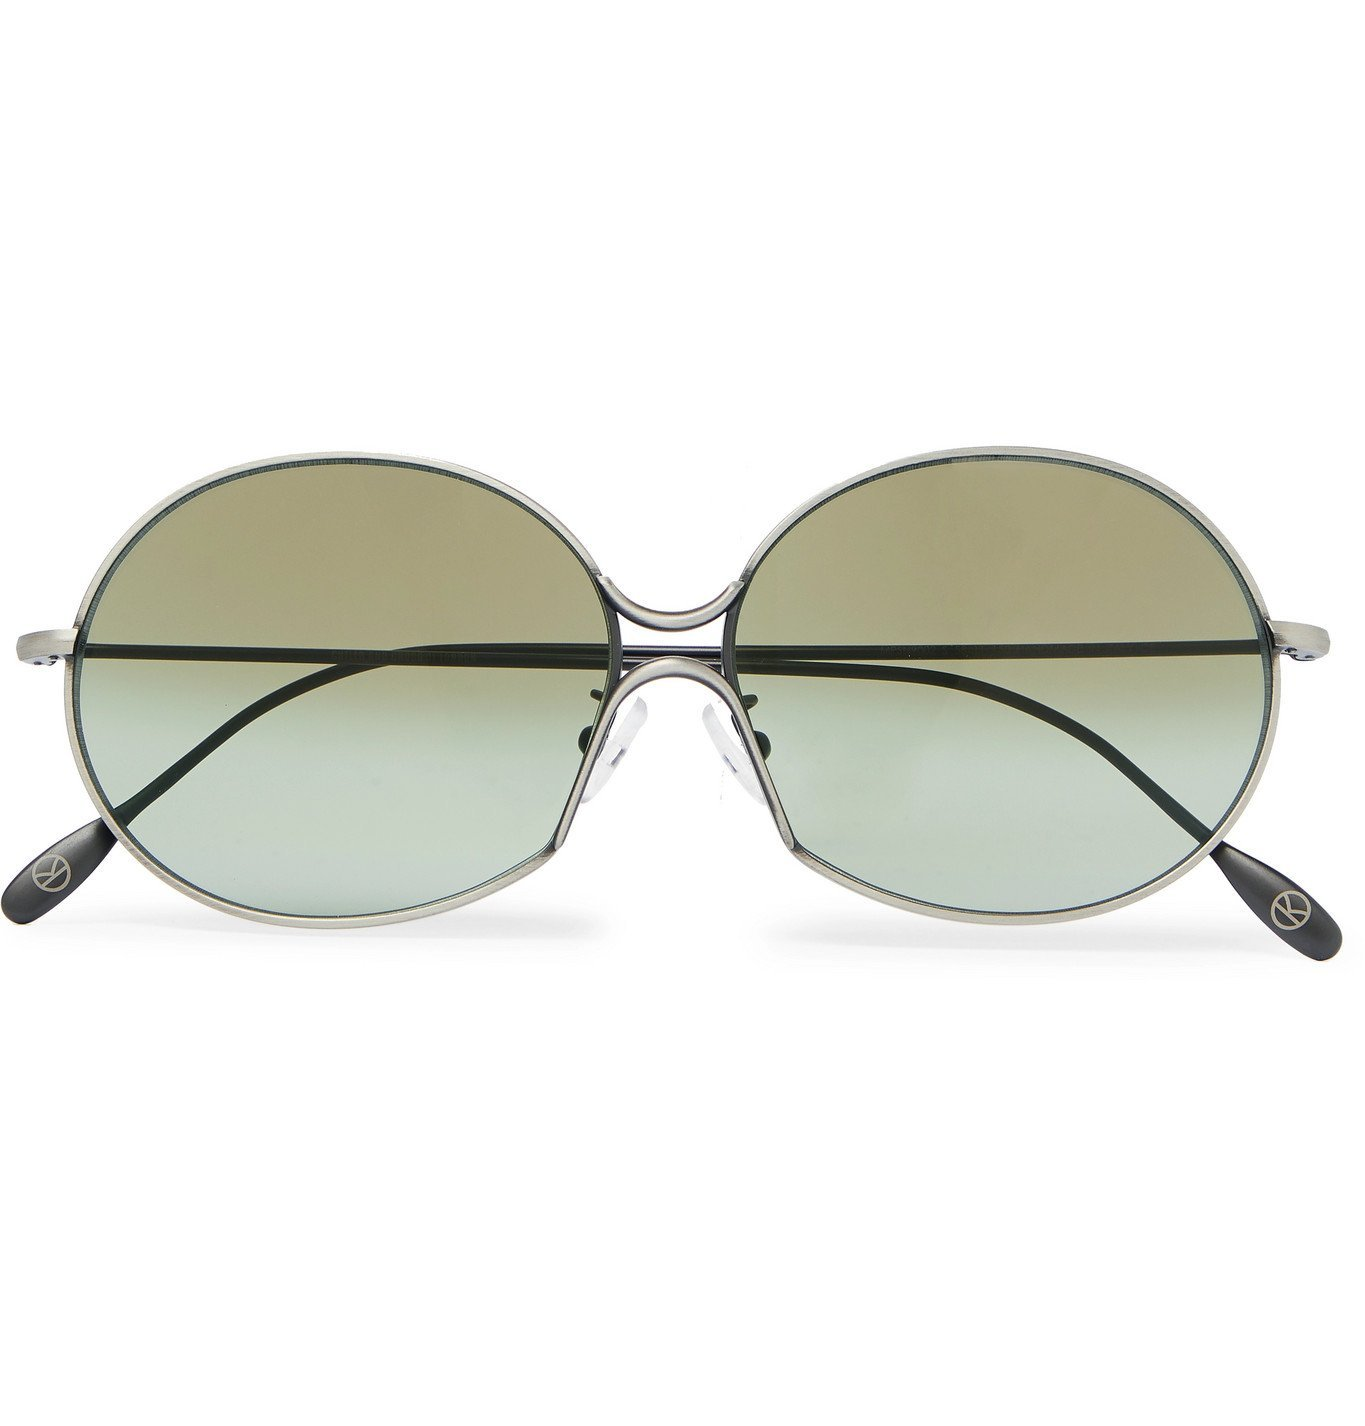 Photo: Kingsman - Cutler and Gross Round-Frame Silver-Tone Metal Sunglasses - Silver